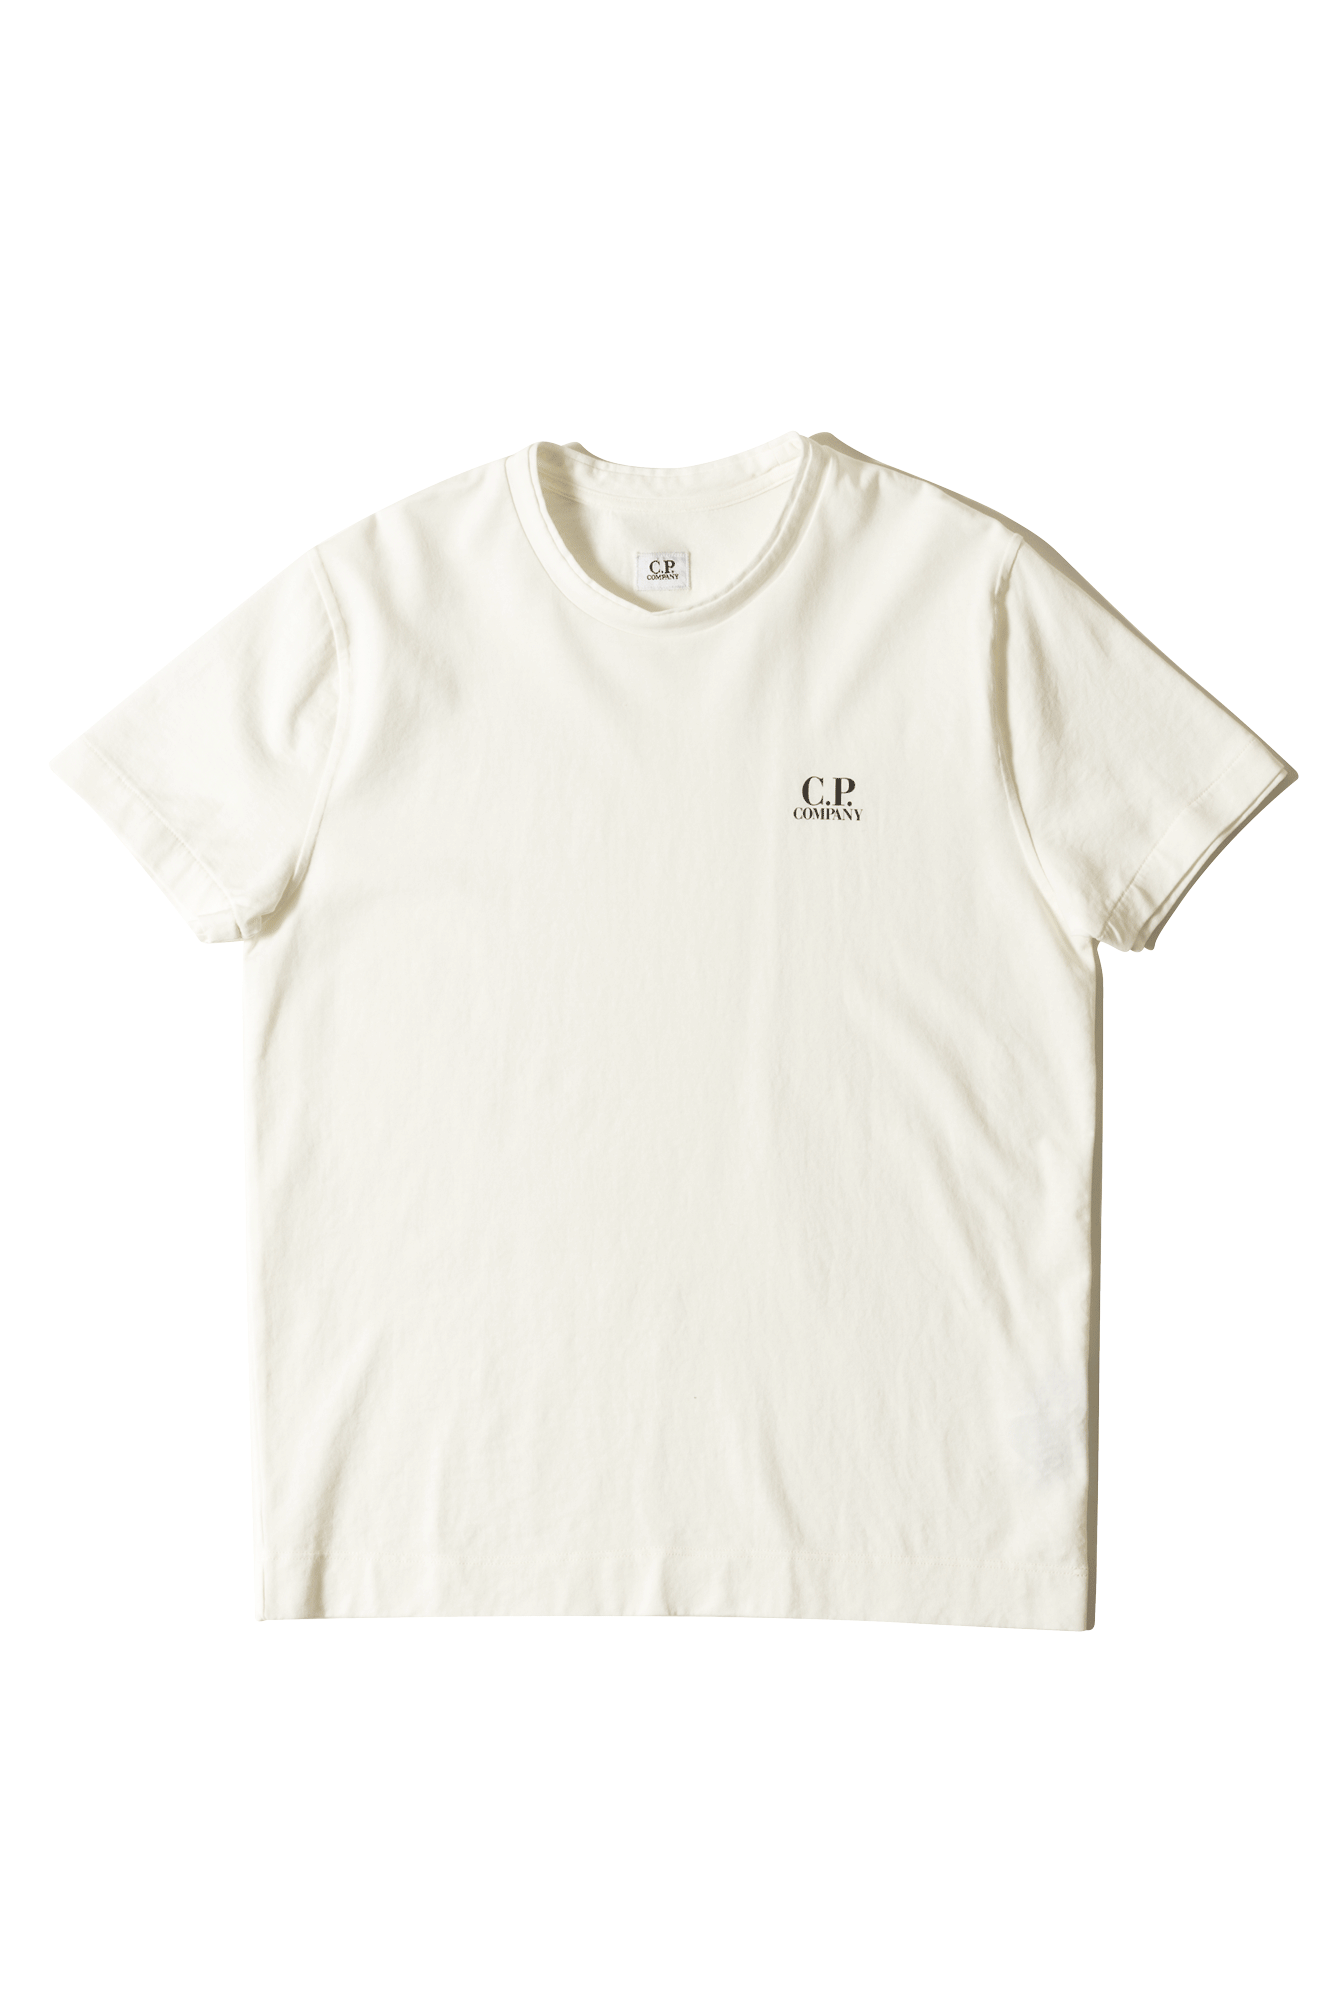 C.P. Company T-Shirts Short Sleeve T-Shirt Bianco Bianco 002A005163#G000#WHT#XL - One Block Down